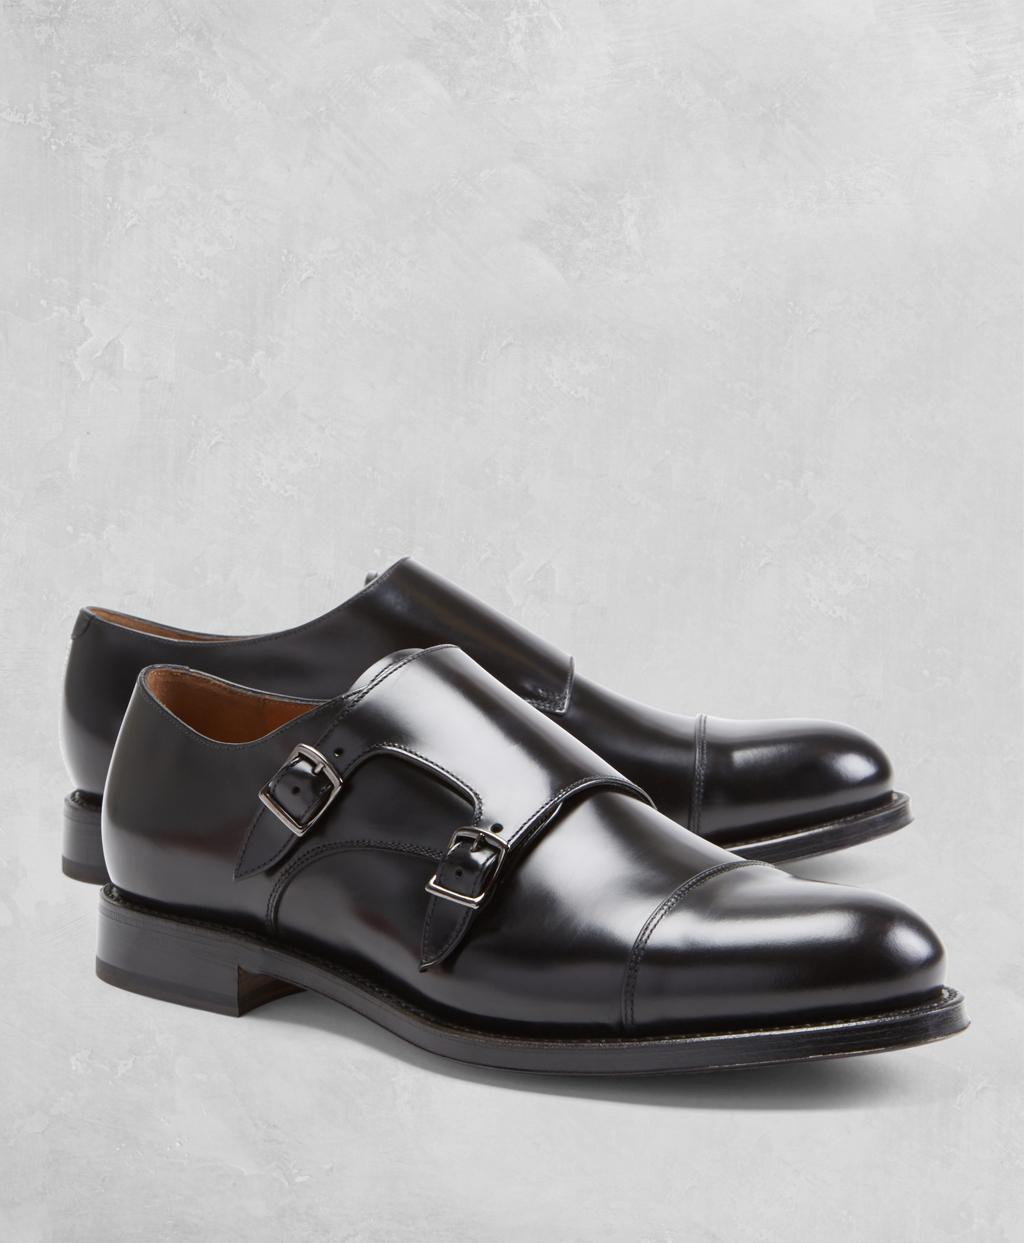 35dc193c2c509 Lyst - Brooks Brothers Golden Fleece Double Monk Straps in Black for Men